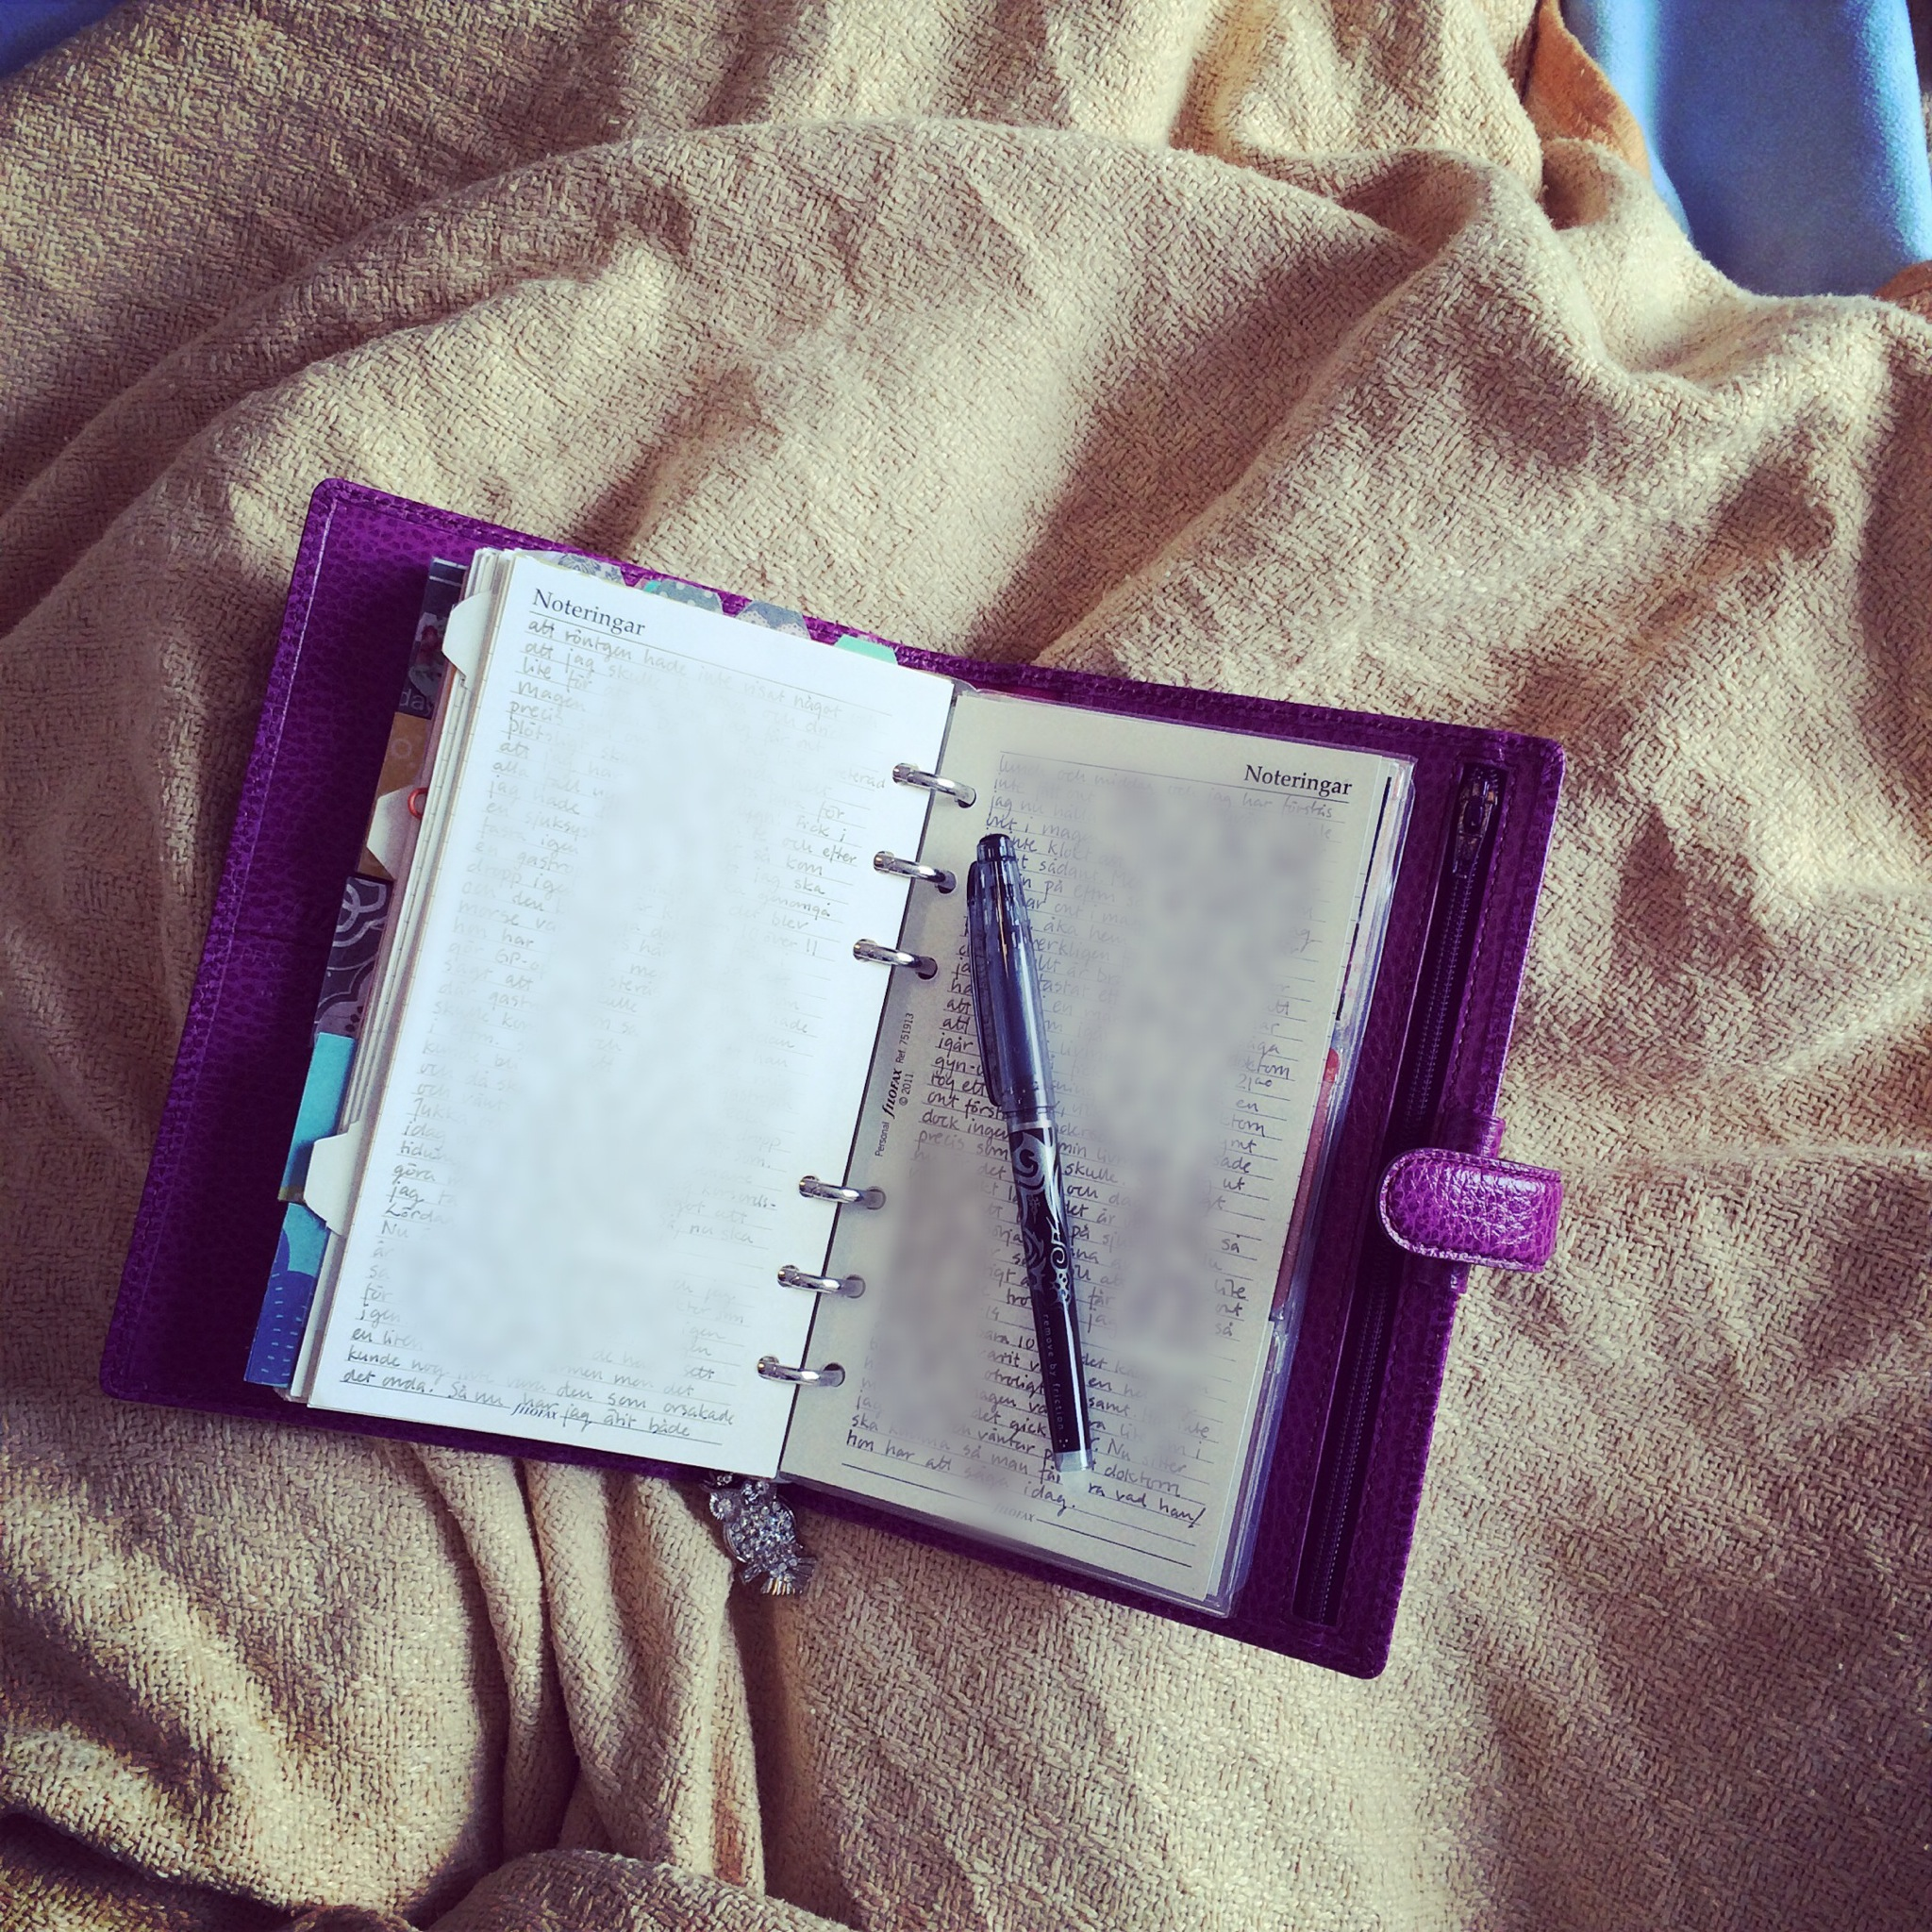 Writing in my journal this totally boring Sunday